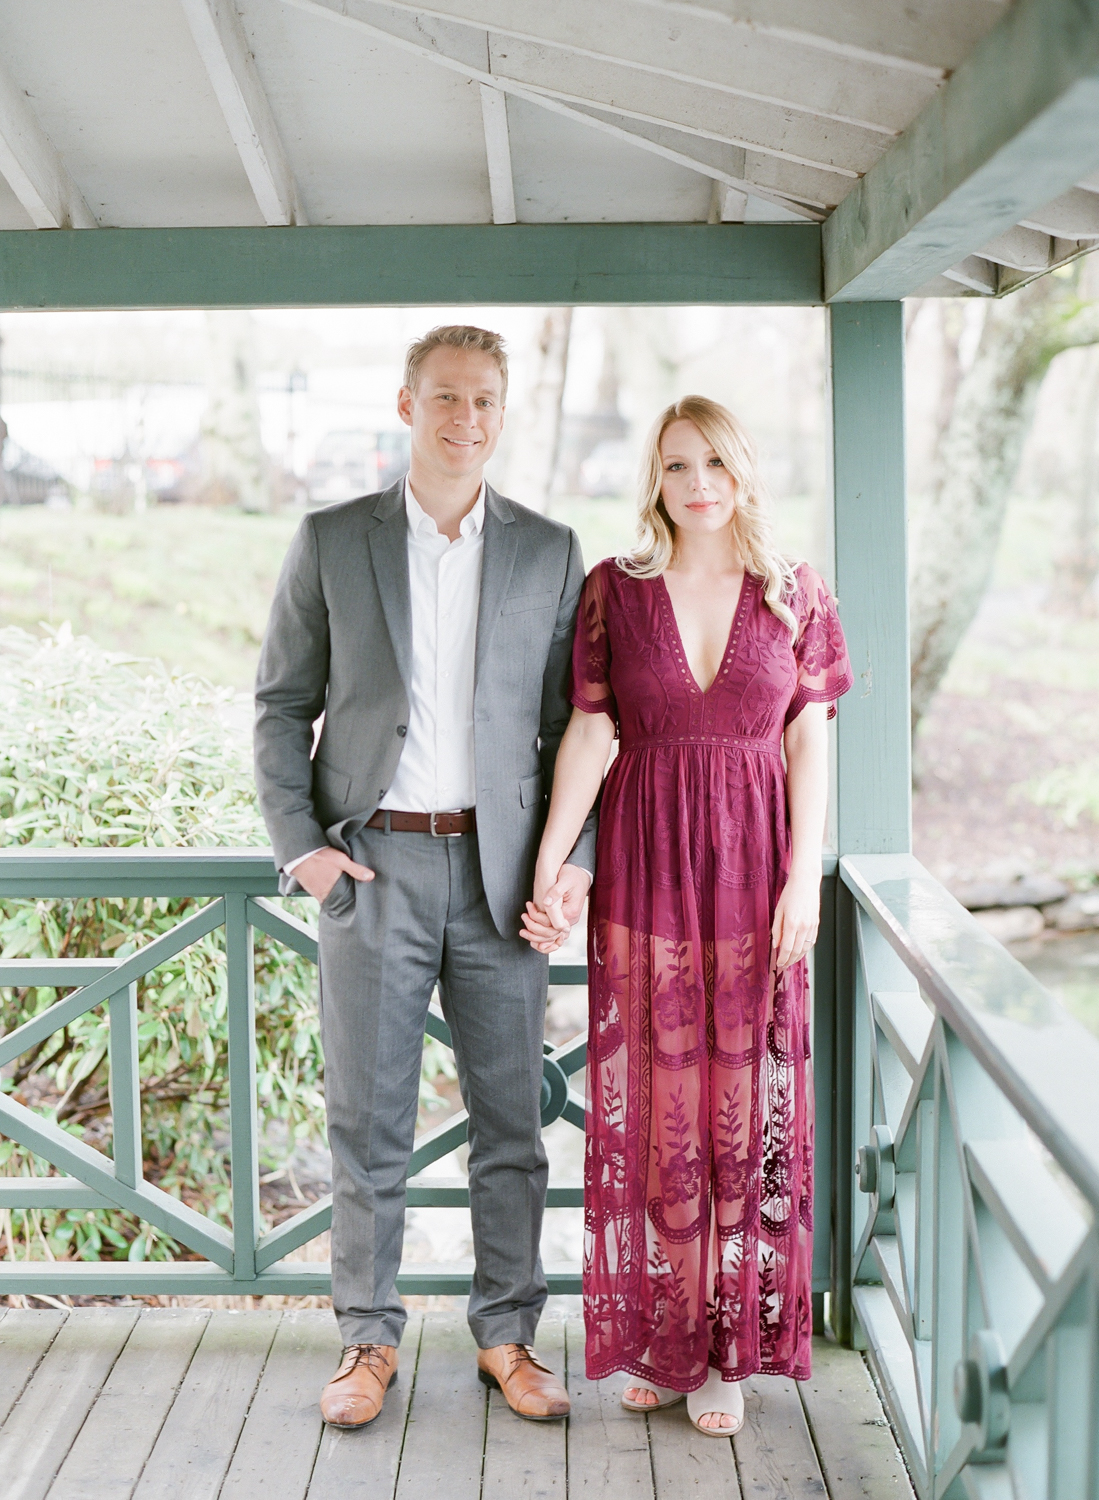 Jacqueline Anne Photography - Amanda and Brent-80.jpg